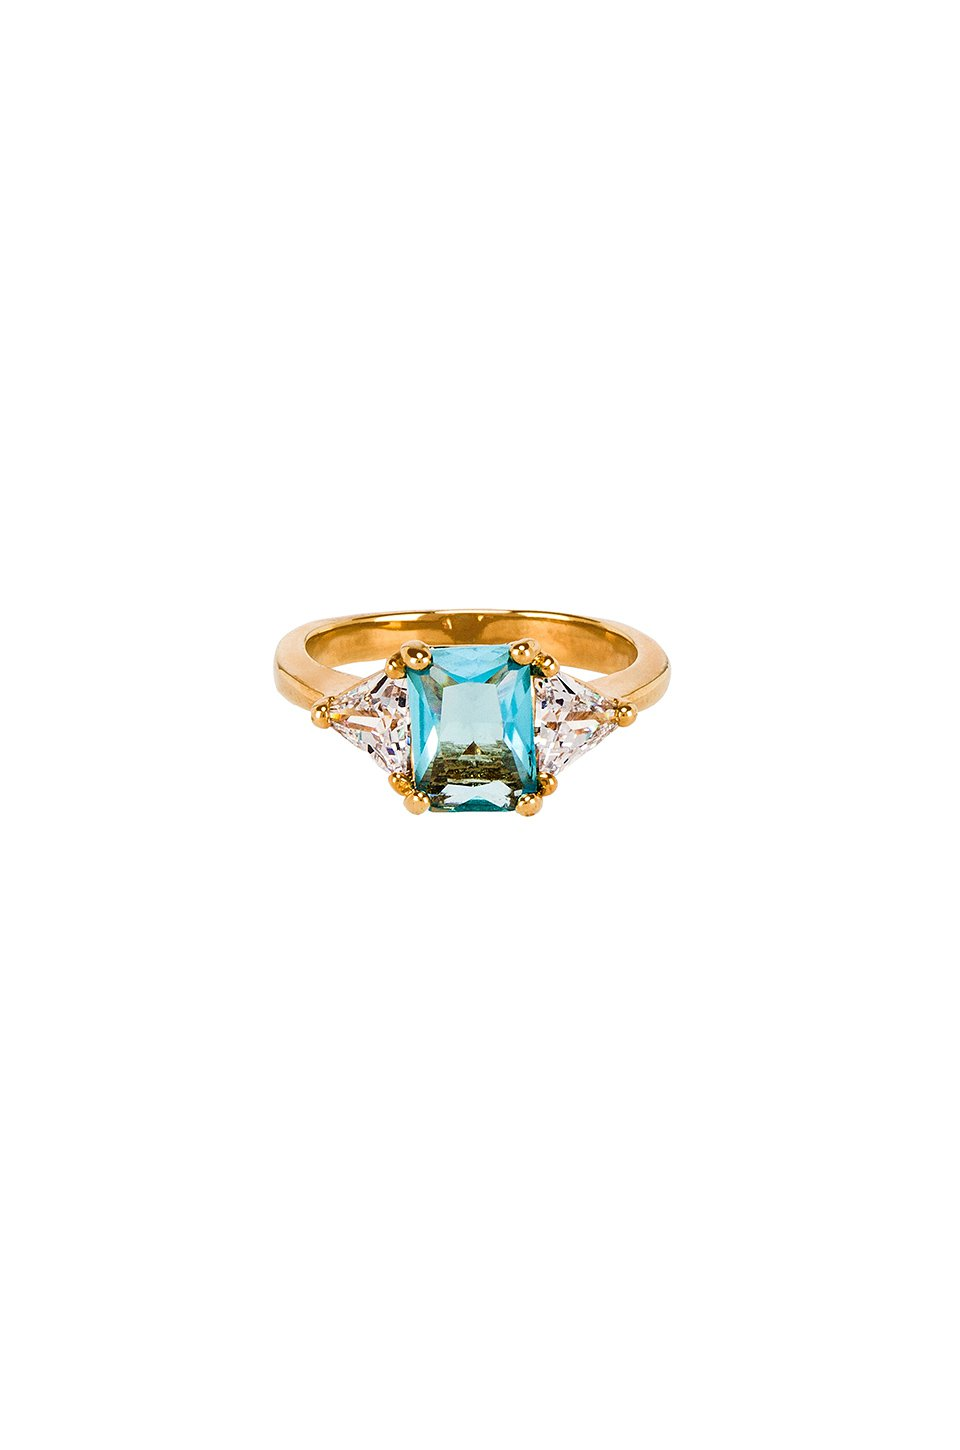 The Mystic Light Blue Ring